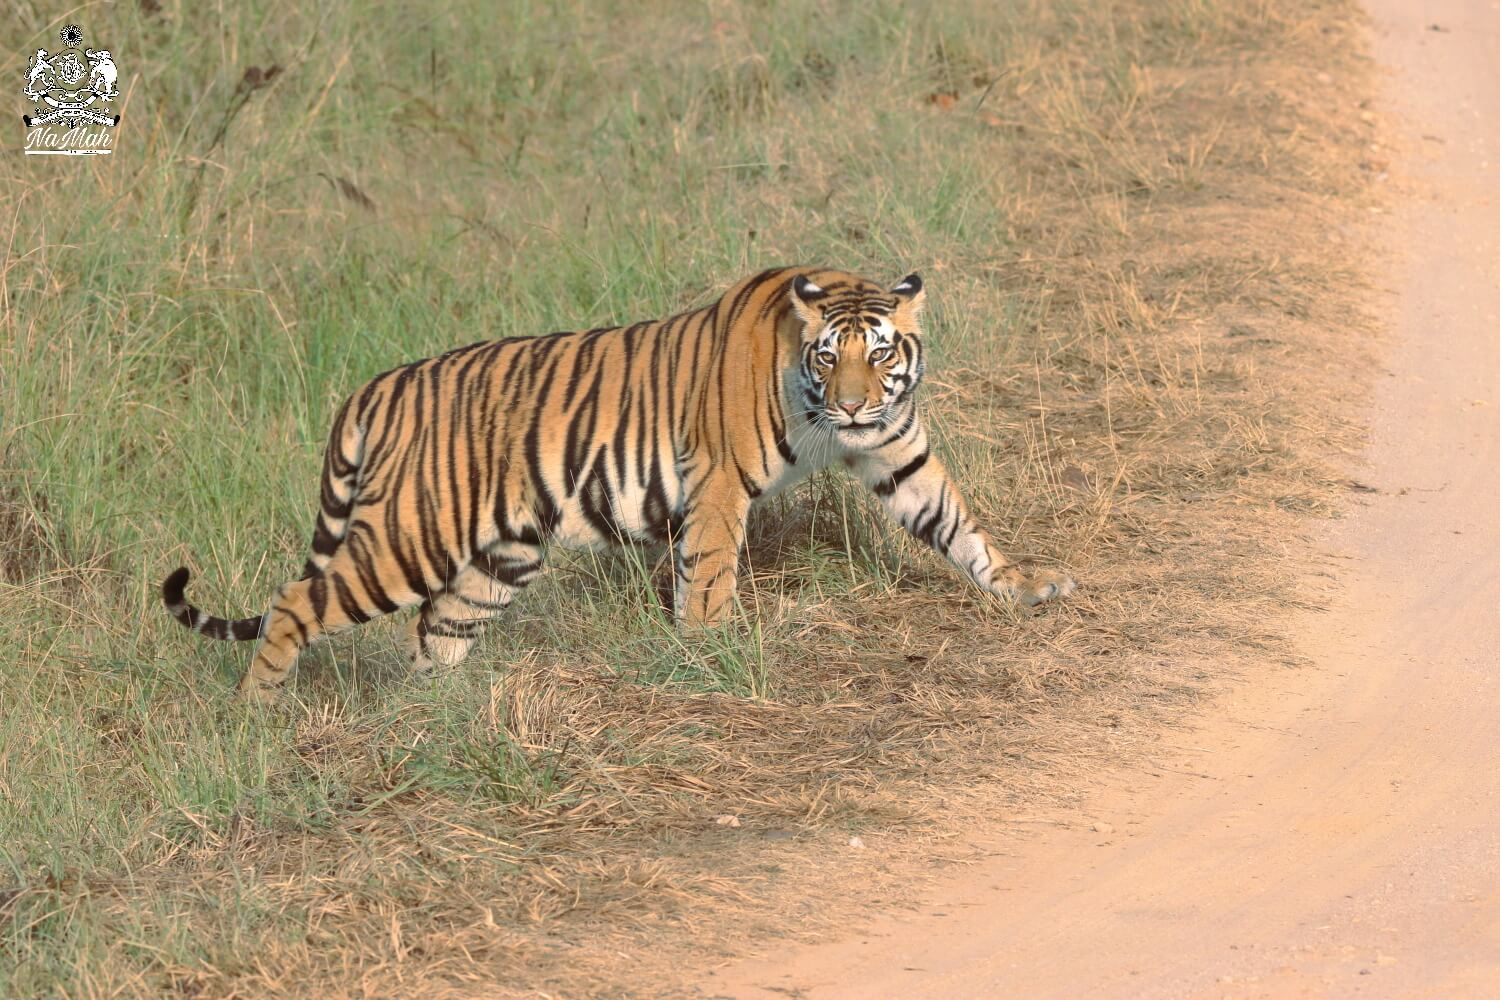 Tigress looking at photographer while coming out of grassland